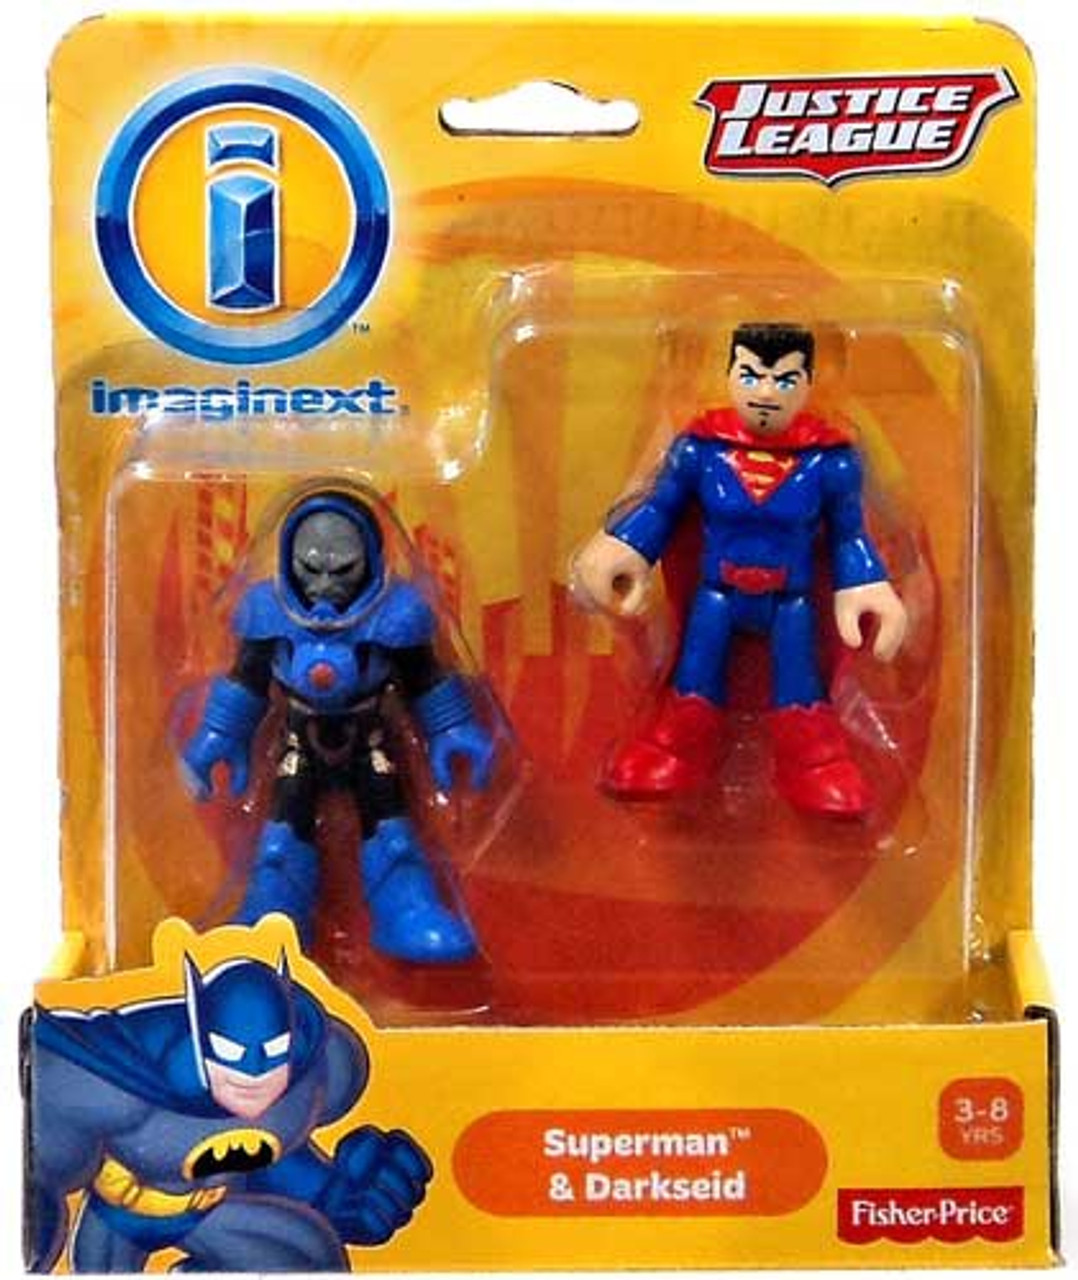 Fisher Price DC Super Friends Justice League Imaginext Superman & Darkseid Exclusive 3-Inch Mini Figures